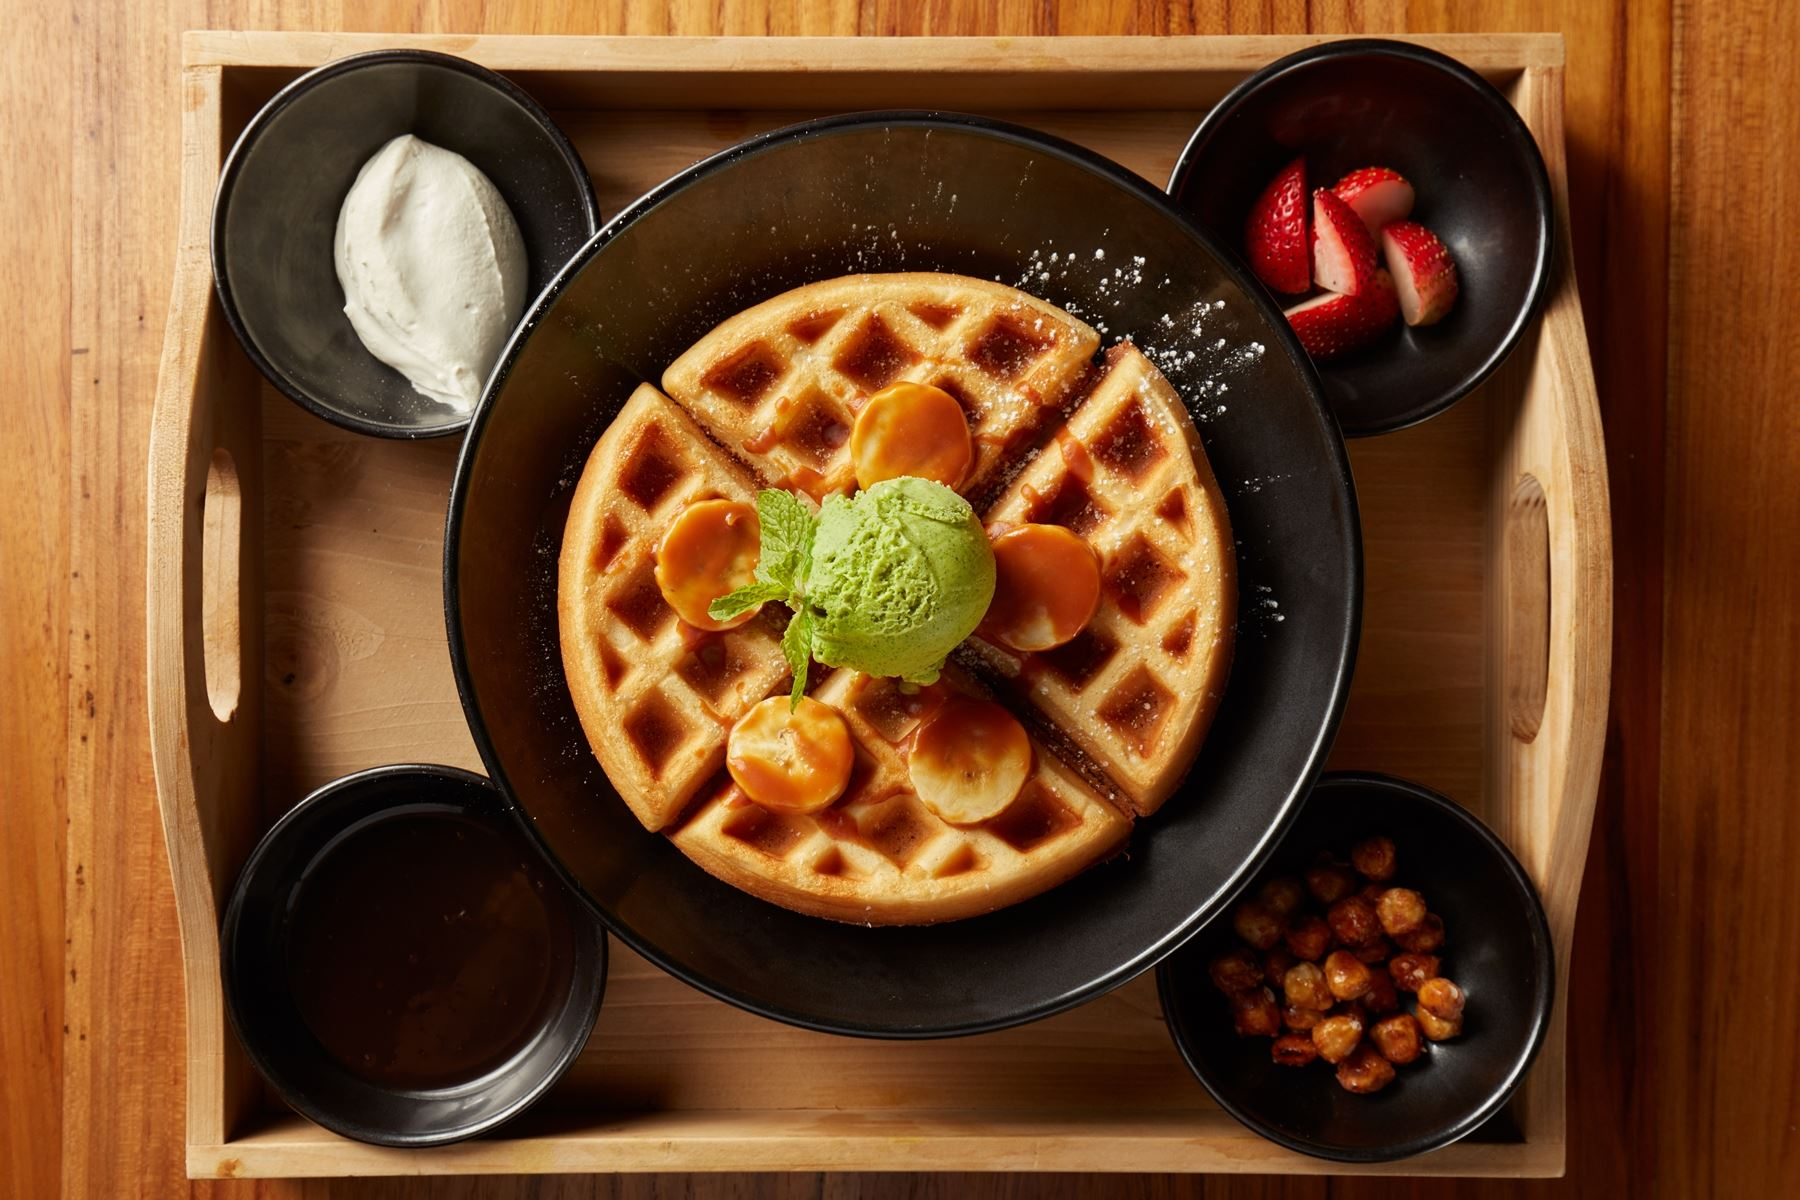 Beer Republic - Waffles